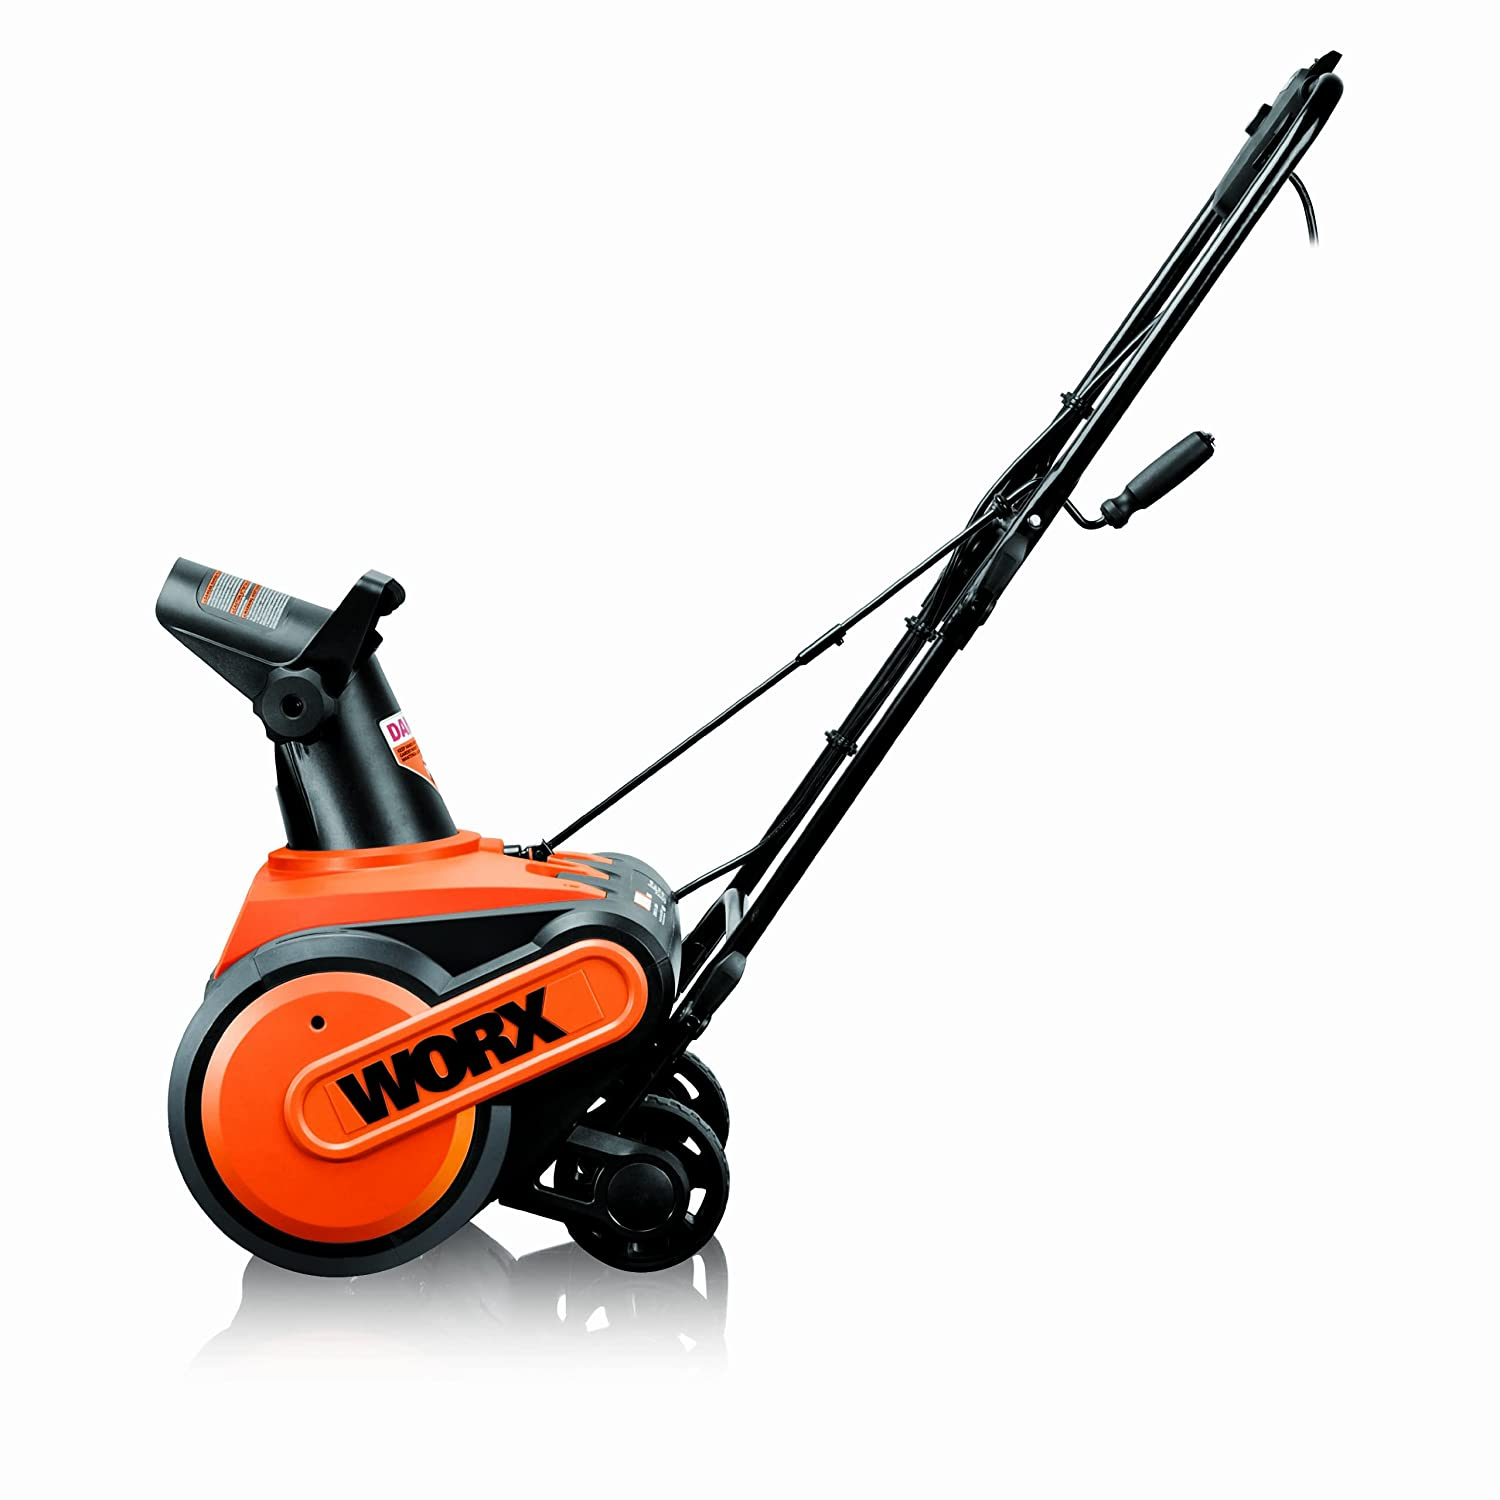 81DMngew%2BsL._SL1500_ amazon com worx wg650 18 inch 13 amp electric snow thrower  at honlapkeszites.co